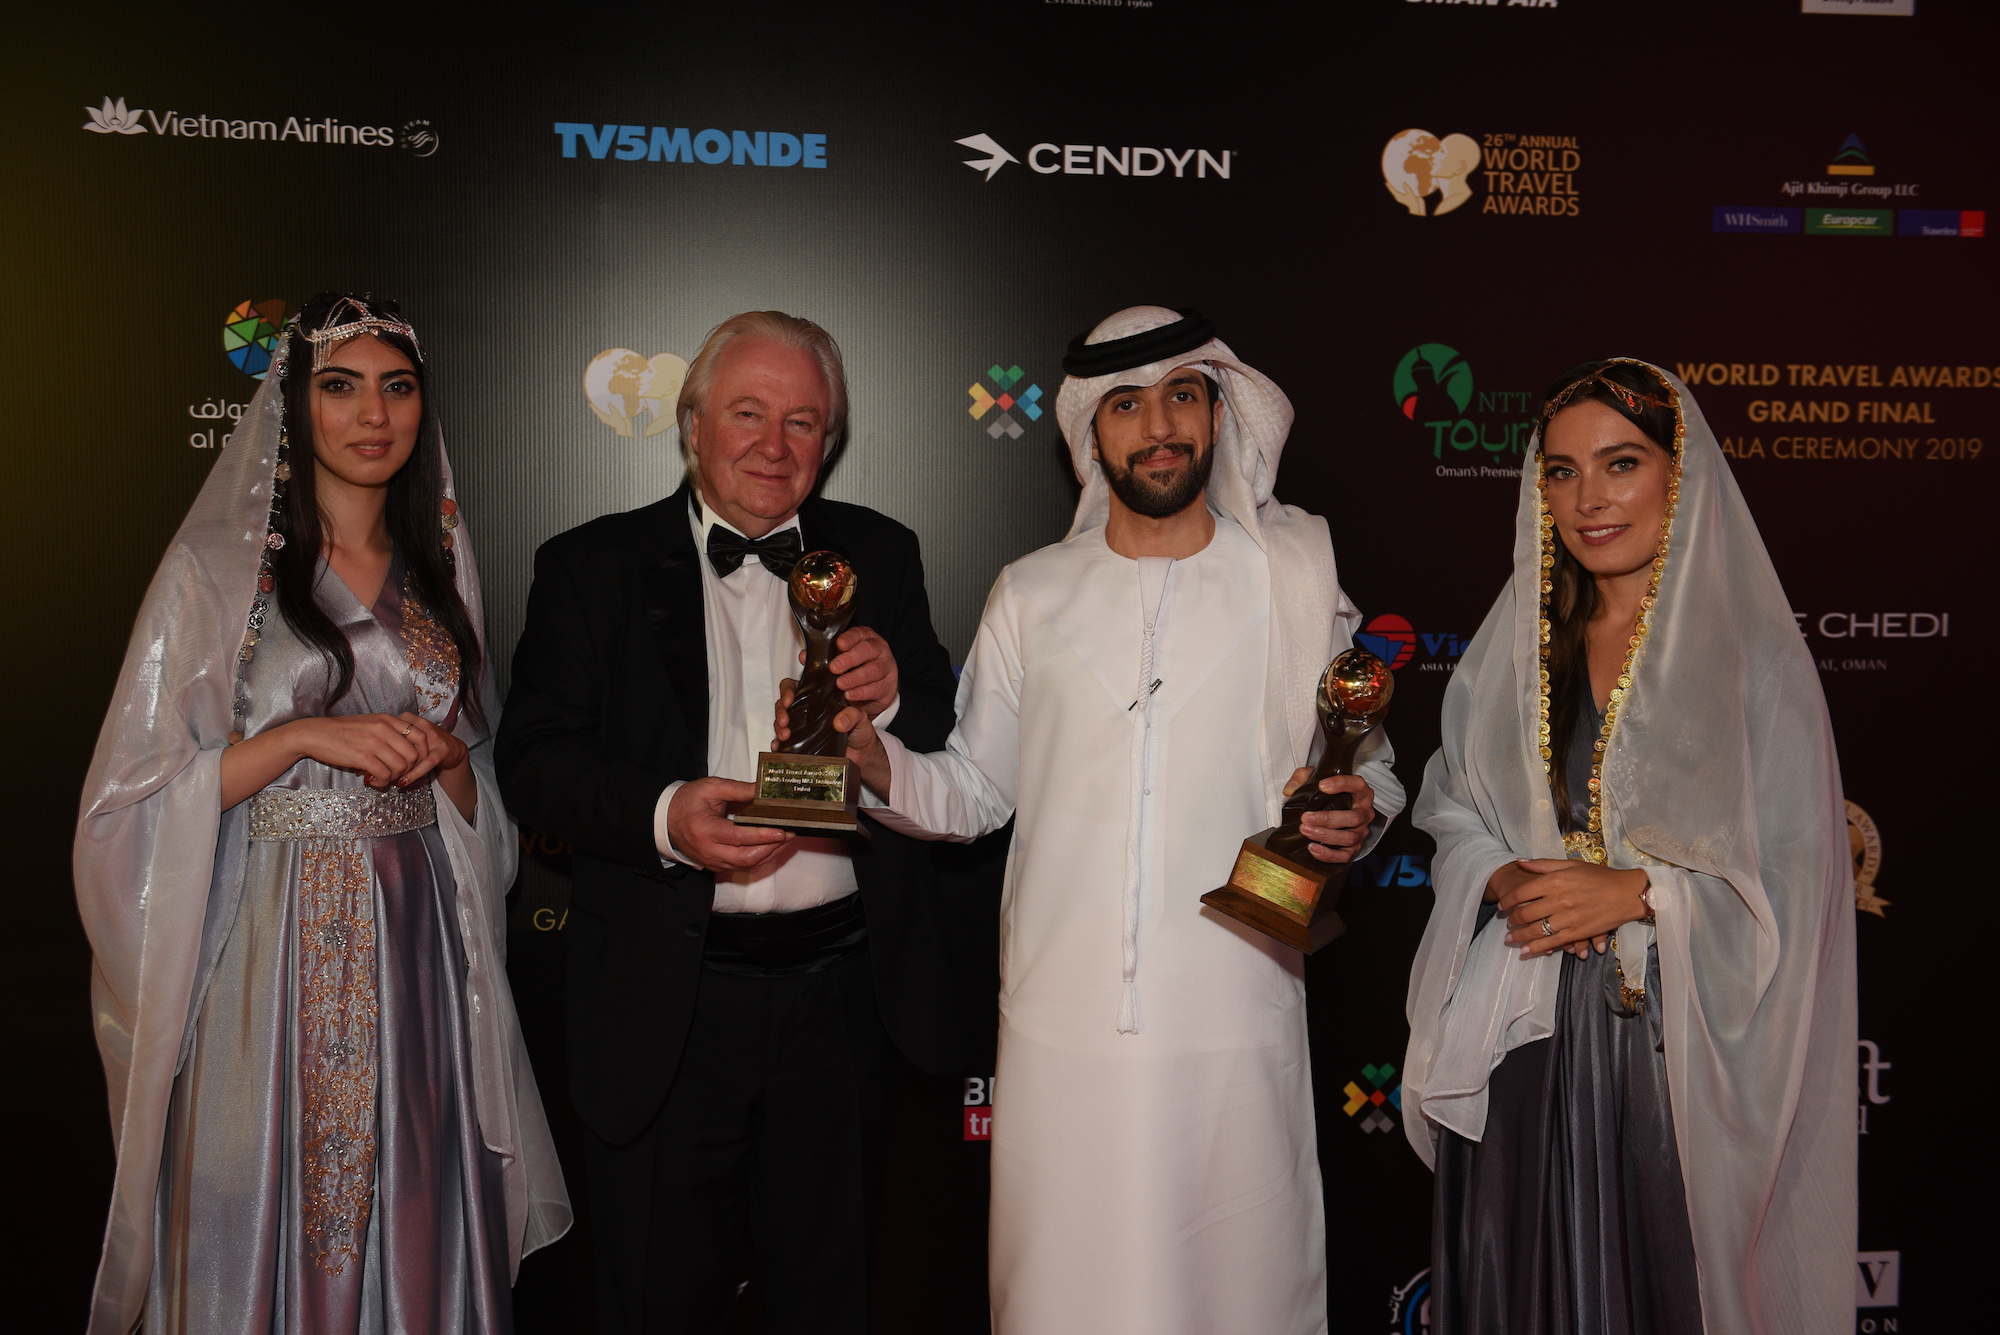 Graham Cooke, grundlægger af konceptet World Travel Awards og Mohammad Khadim, Dubai Department of Tourism and Commerce Marketing ved prisoverrækkelsen. Pressefoto: World Travel Awards.